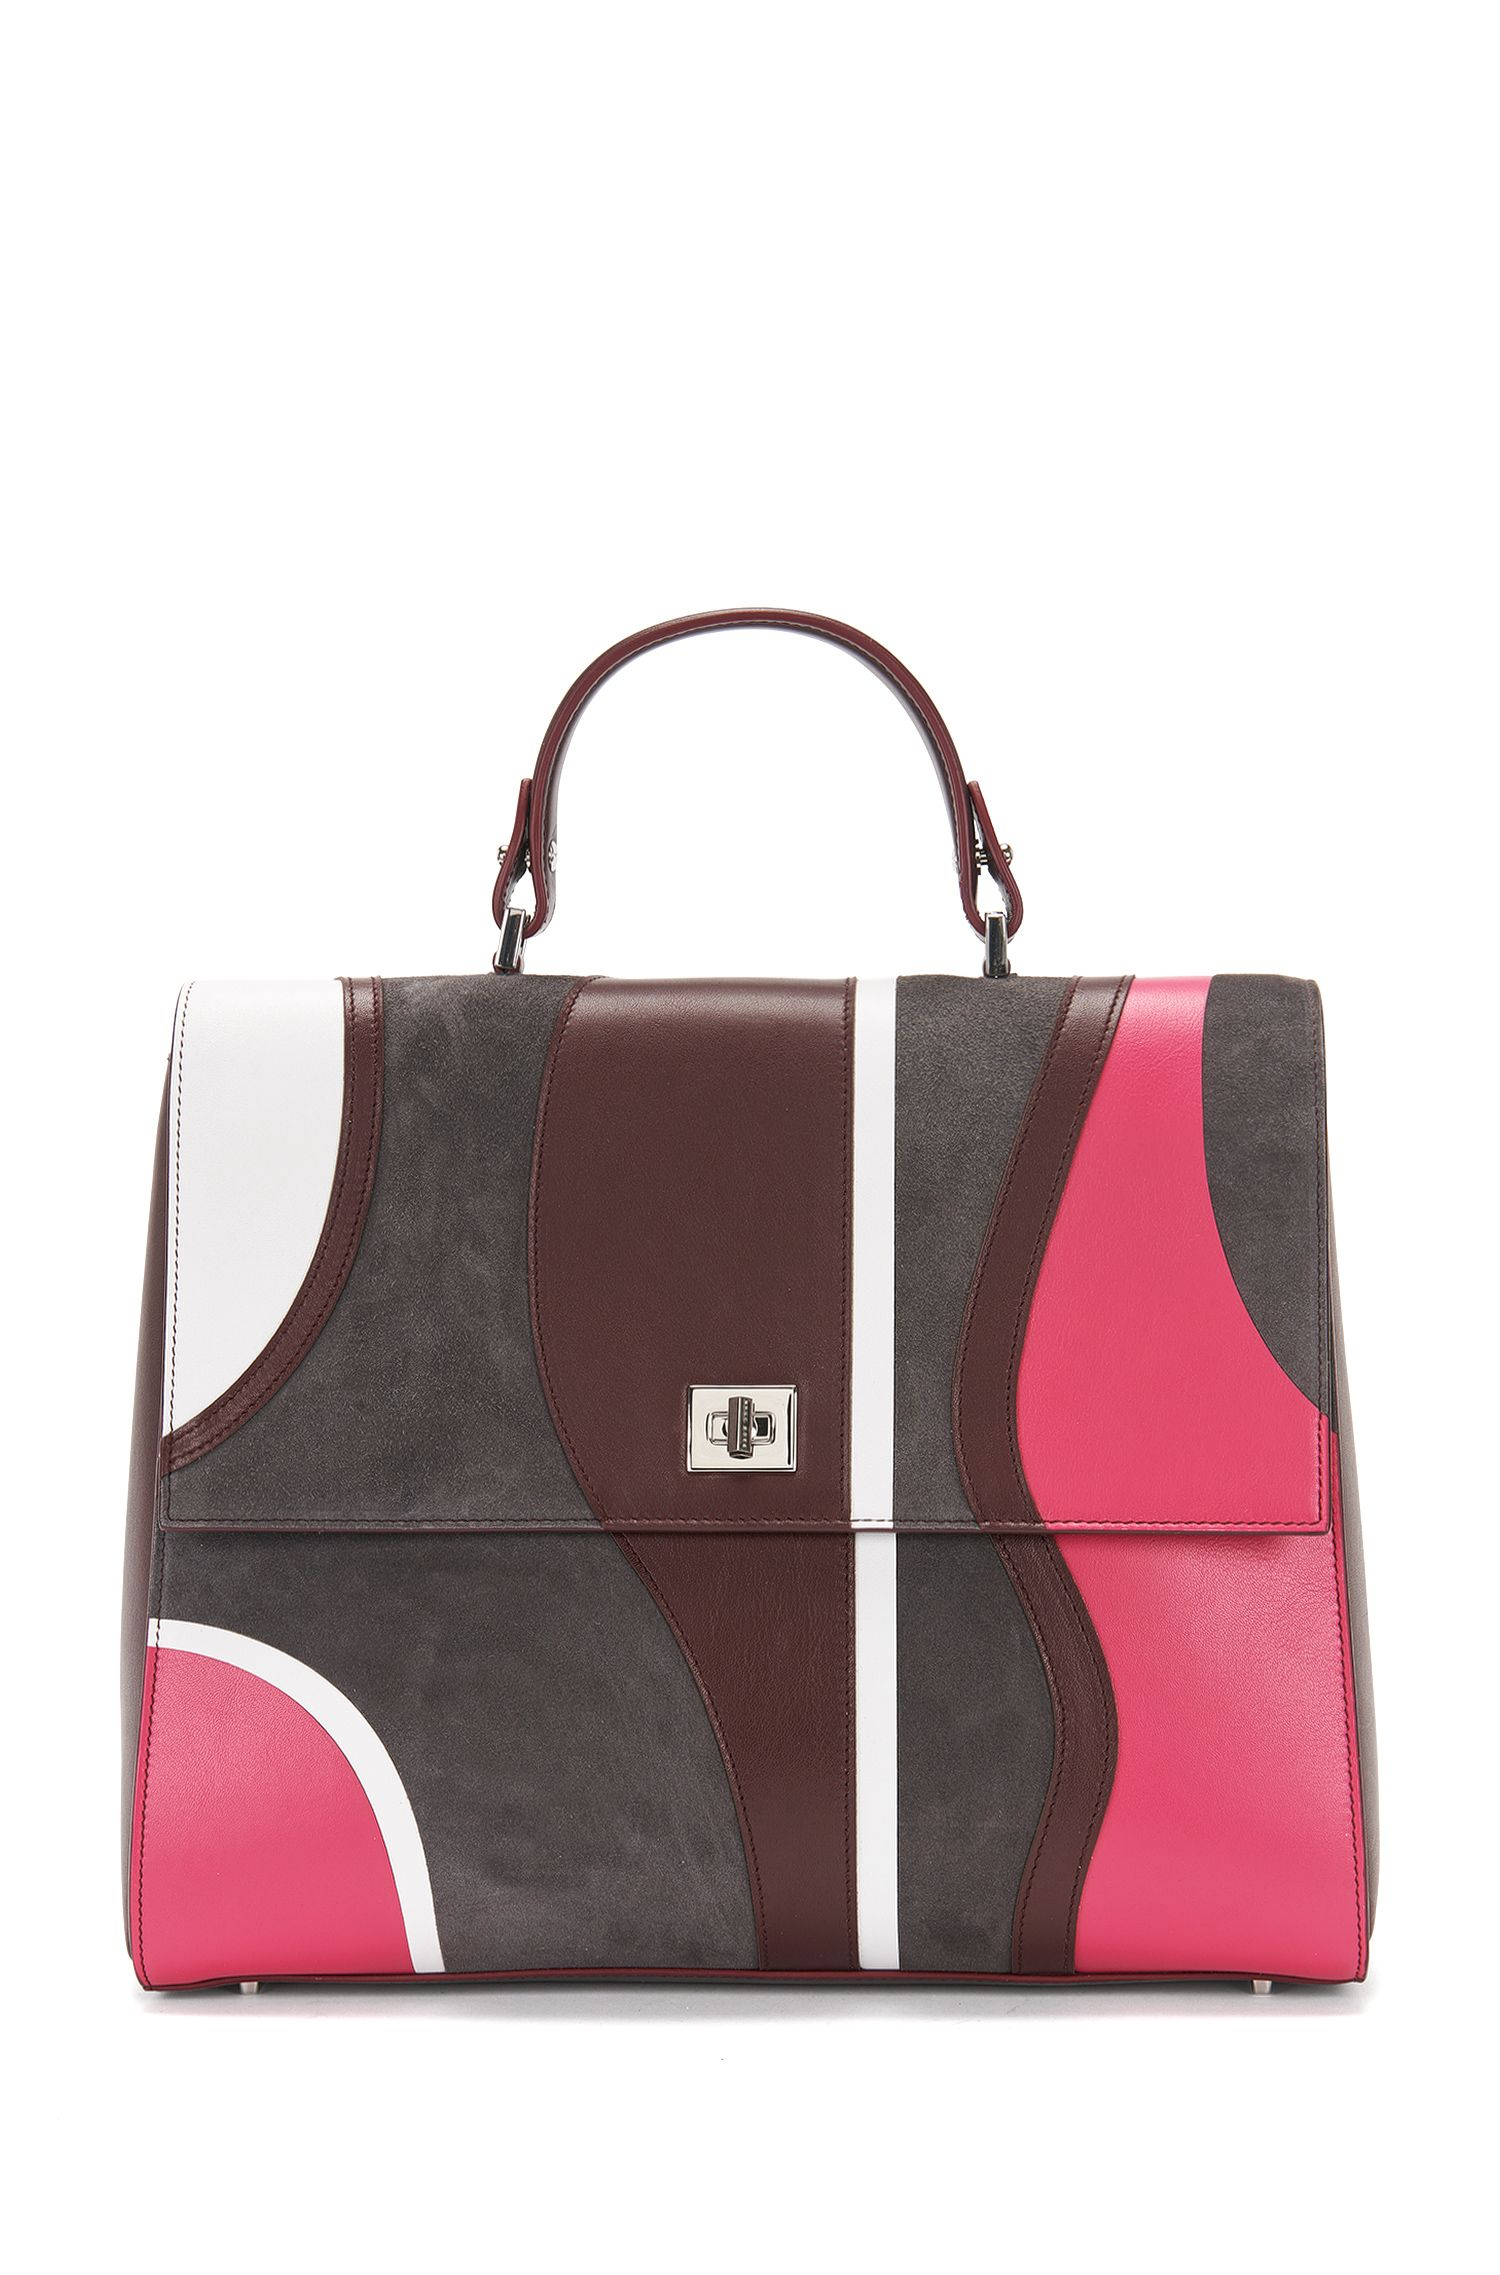 BOSS Bespoke leather handbag with a graphic pattern